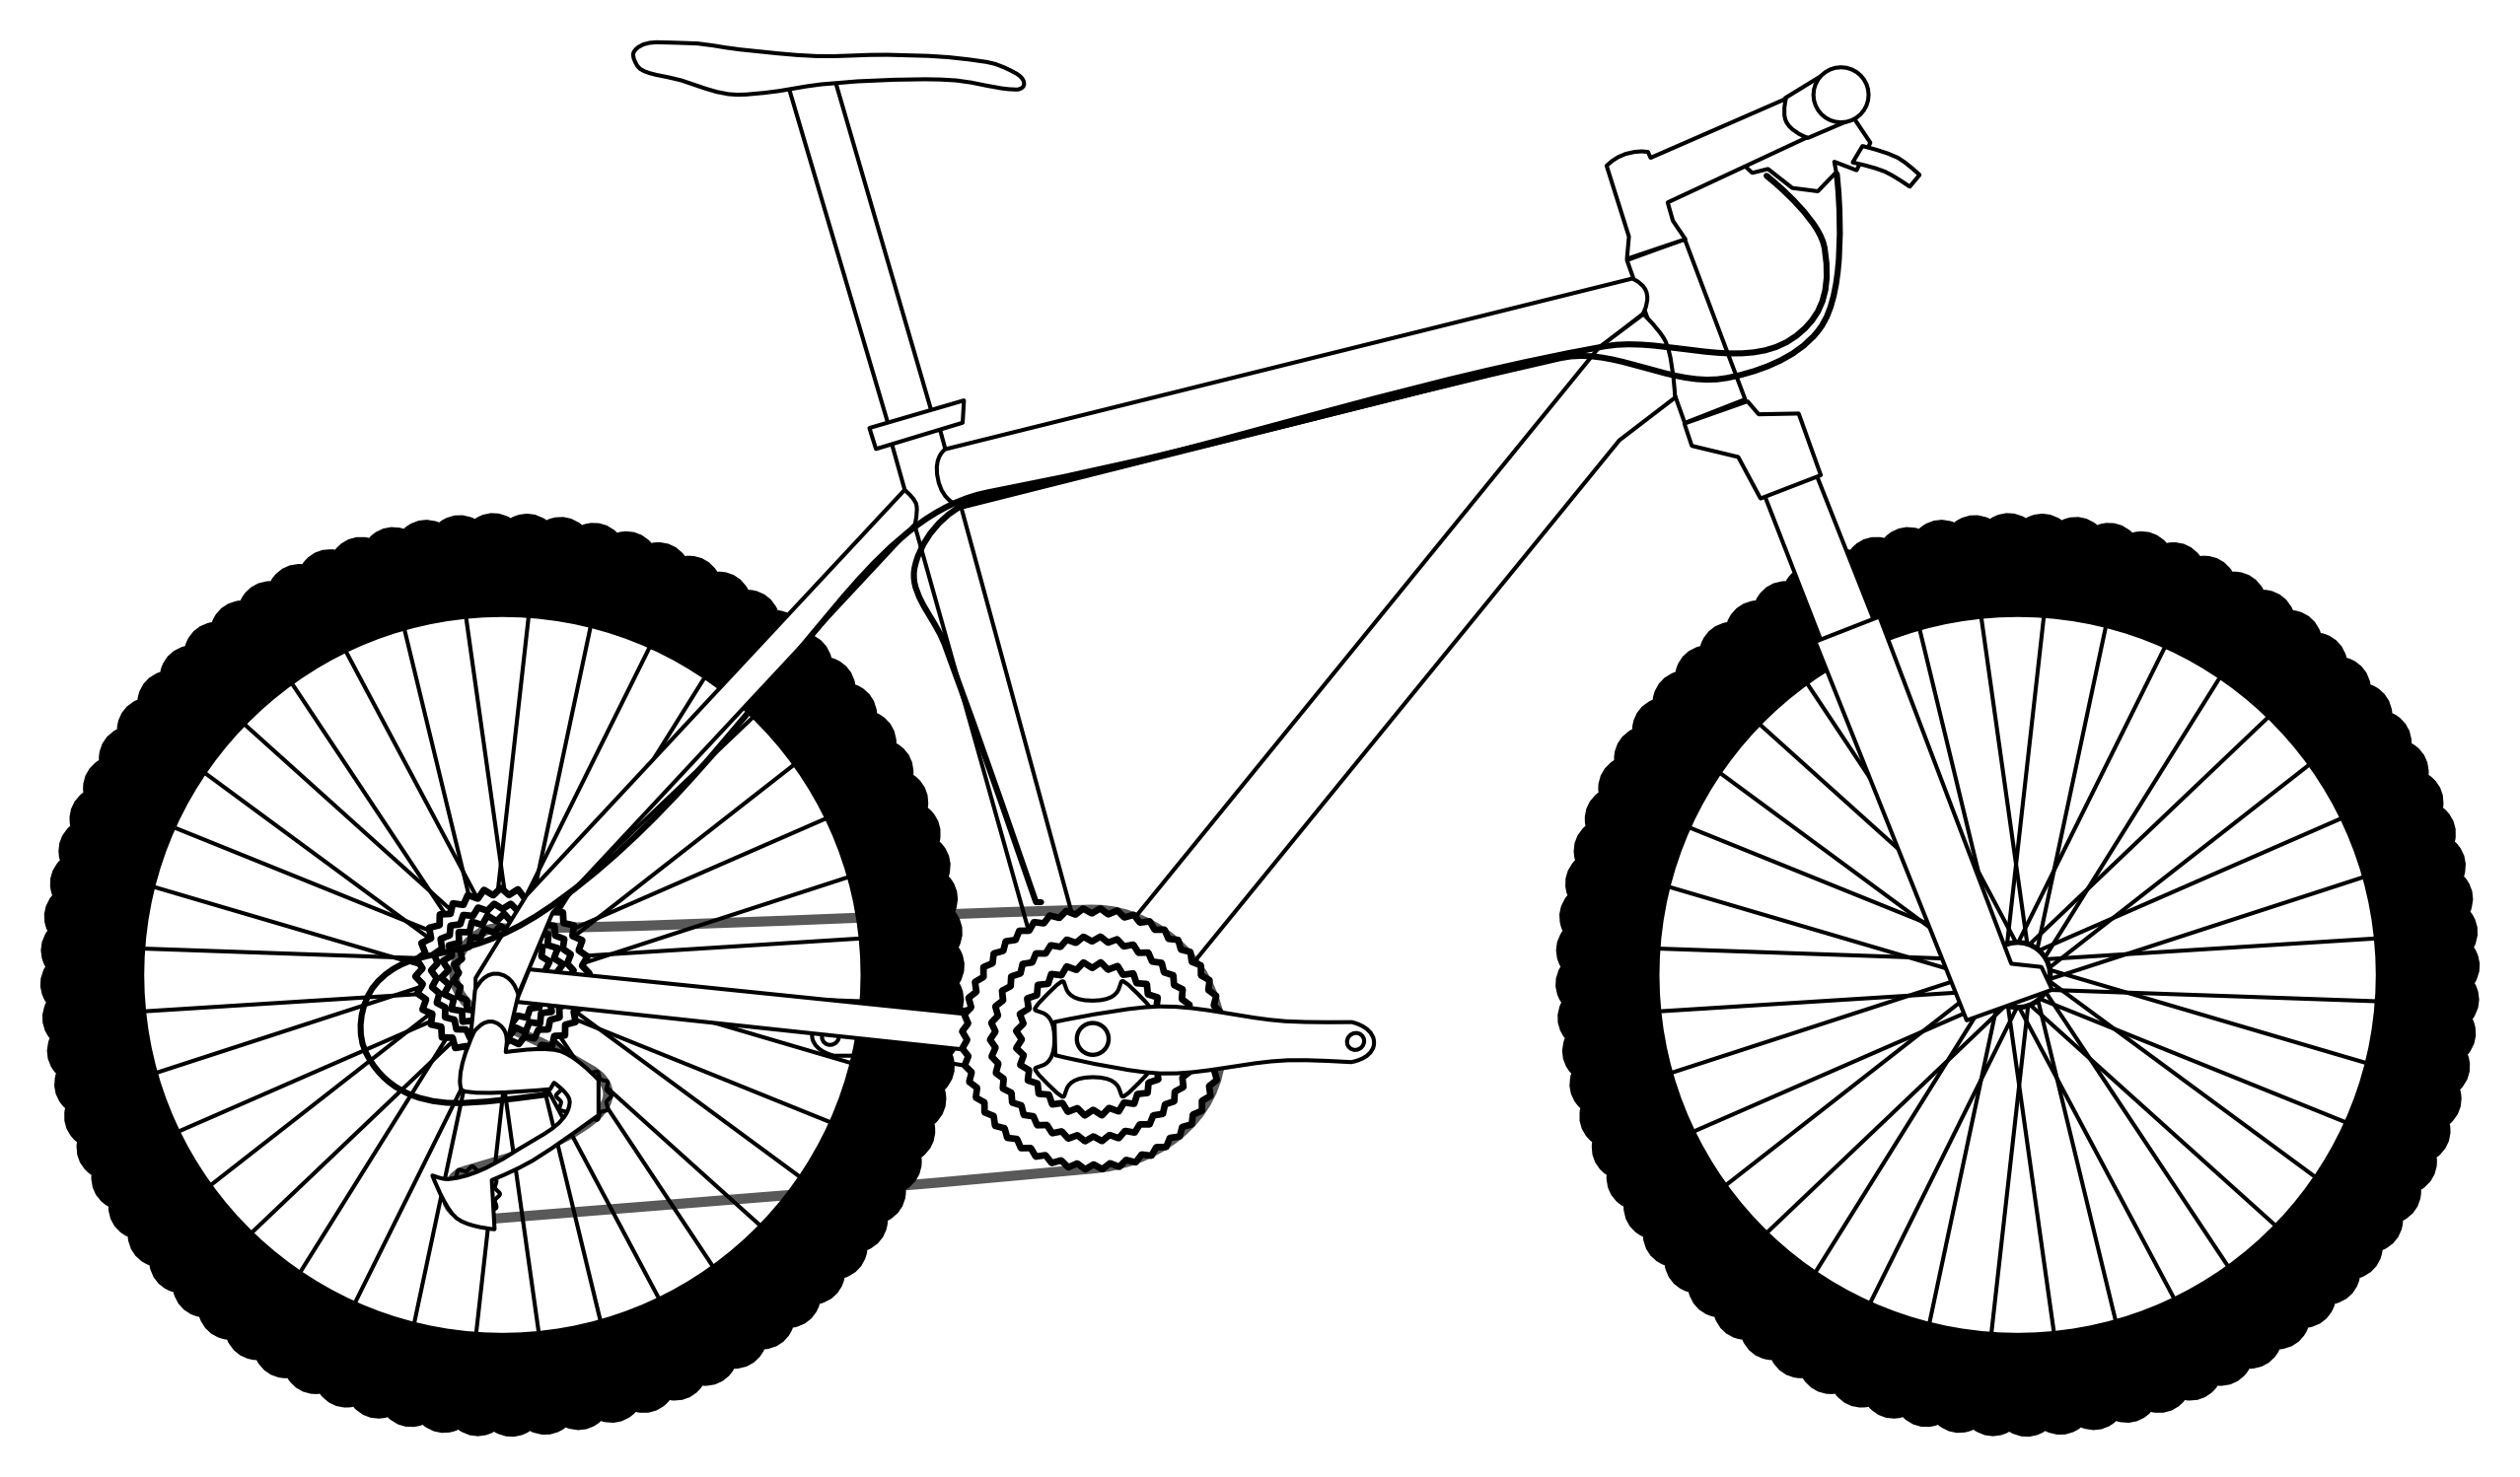 2555x1498 Bicycle bike clipart 6 bikes clip art 3 2 6 clipartcow